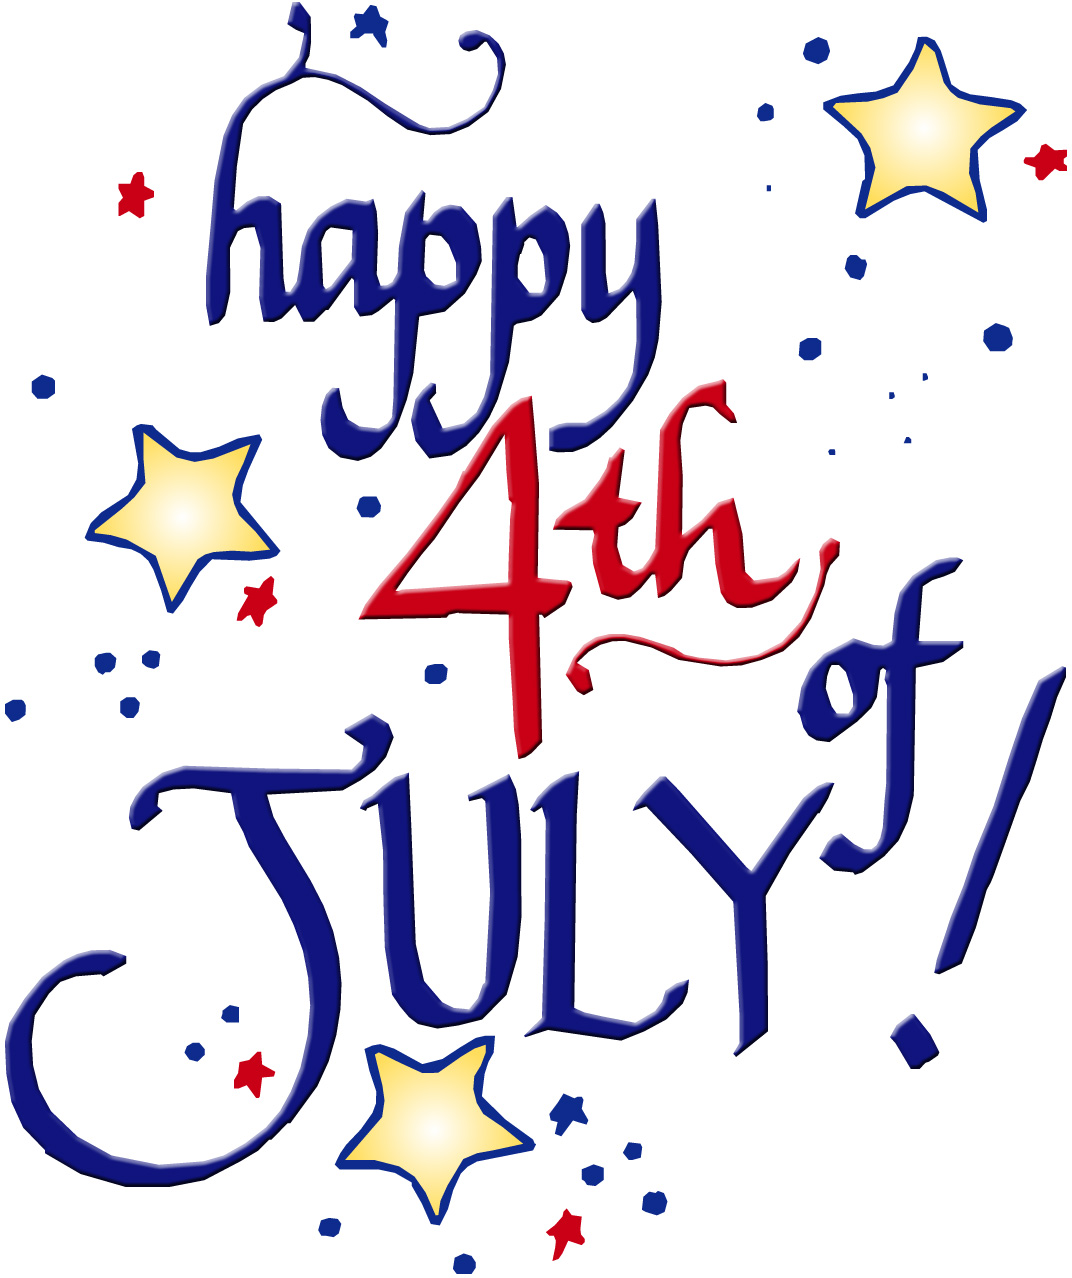 Happy fourth of july clipart for facebook png library stock Happy fourth of july clipart for facebook - ClipartFest png library stock